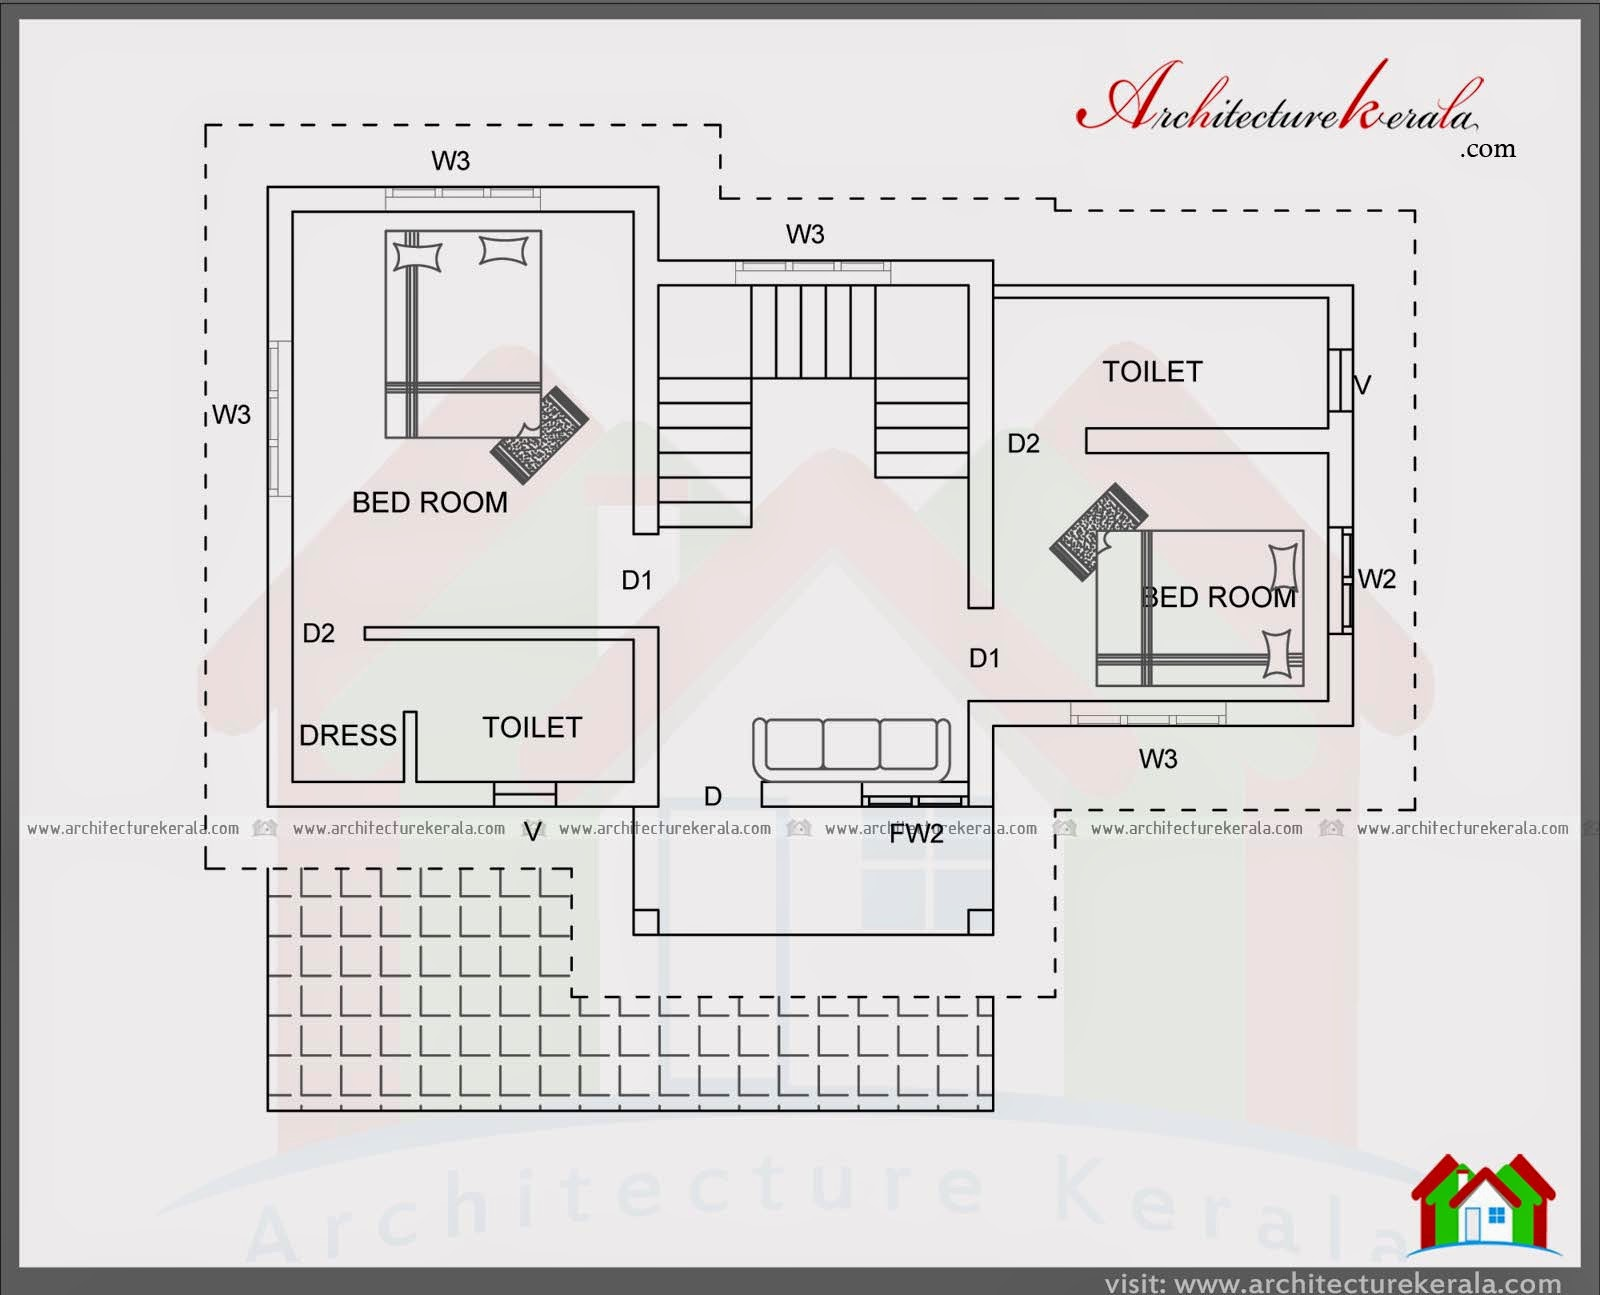 4 bedroom house plan in 1400 square feet architecture kerala for 4 bedroom square house plans